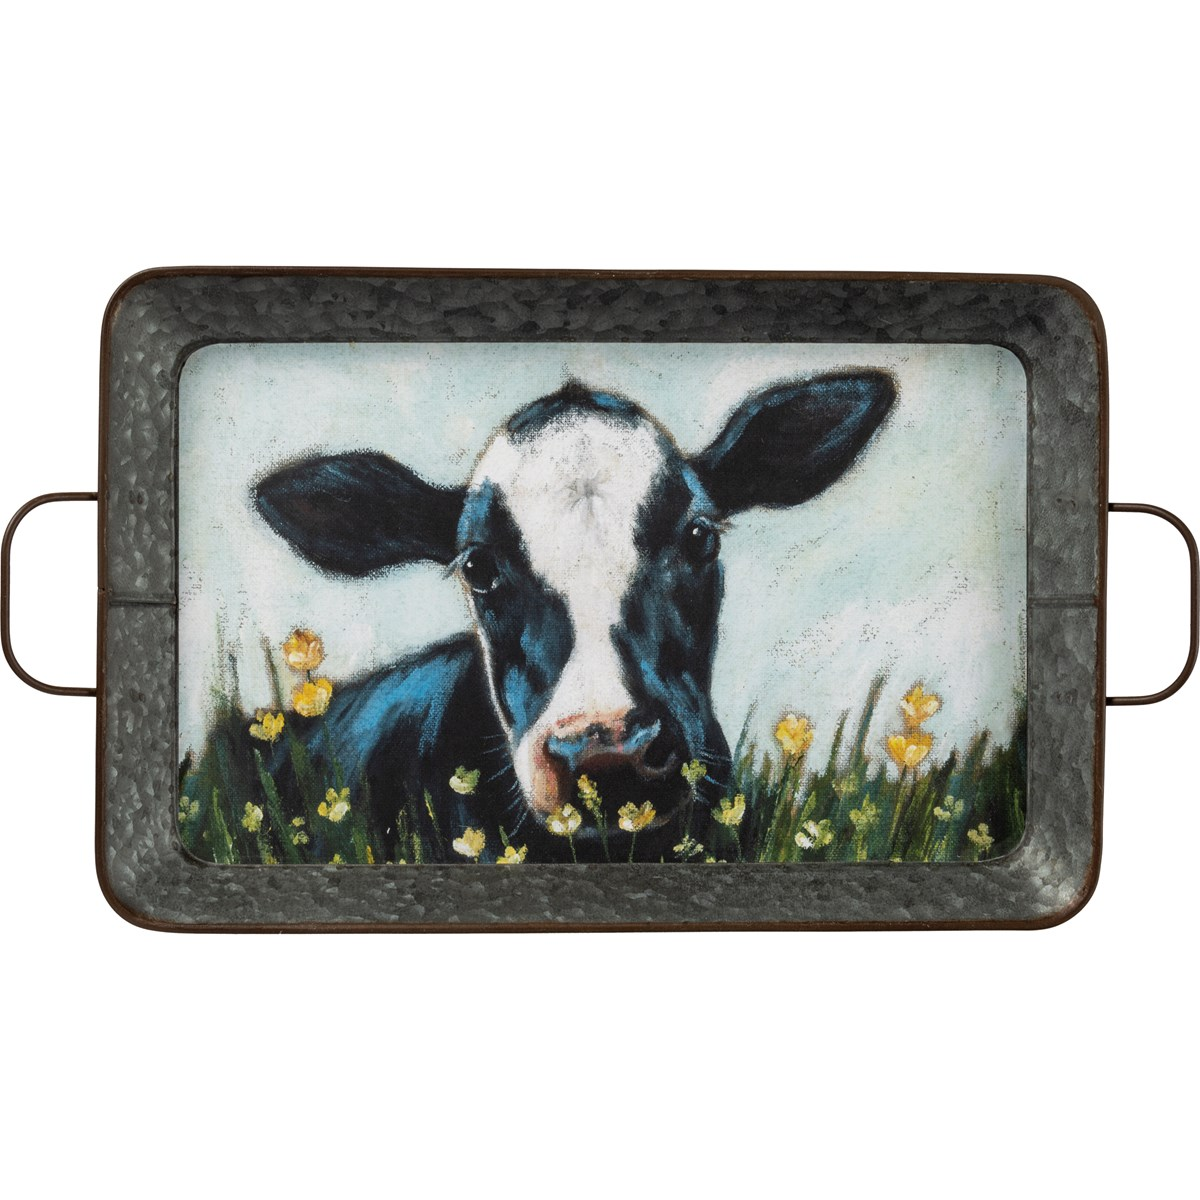 "Tray Set - Sheep And Cow - 19"" x 12.50"" x 2"", 16.50"" x 11"" x 2"" - Metal, Paper"